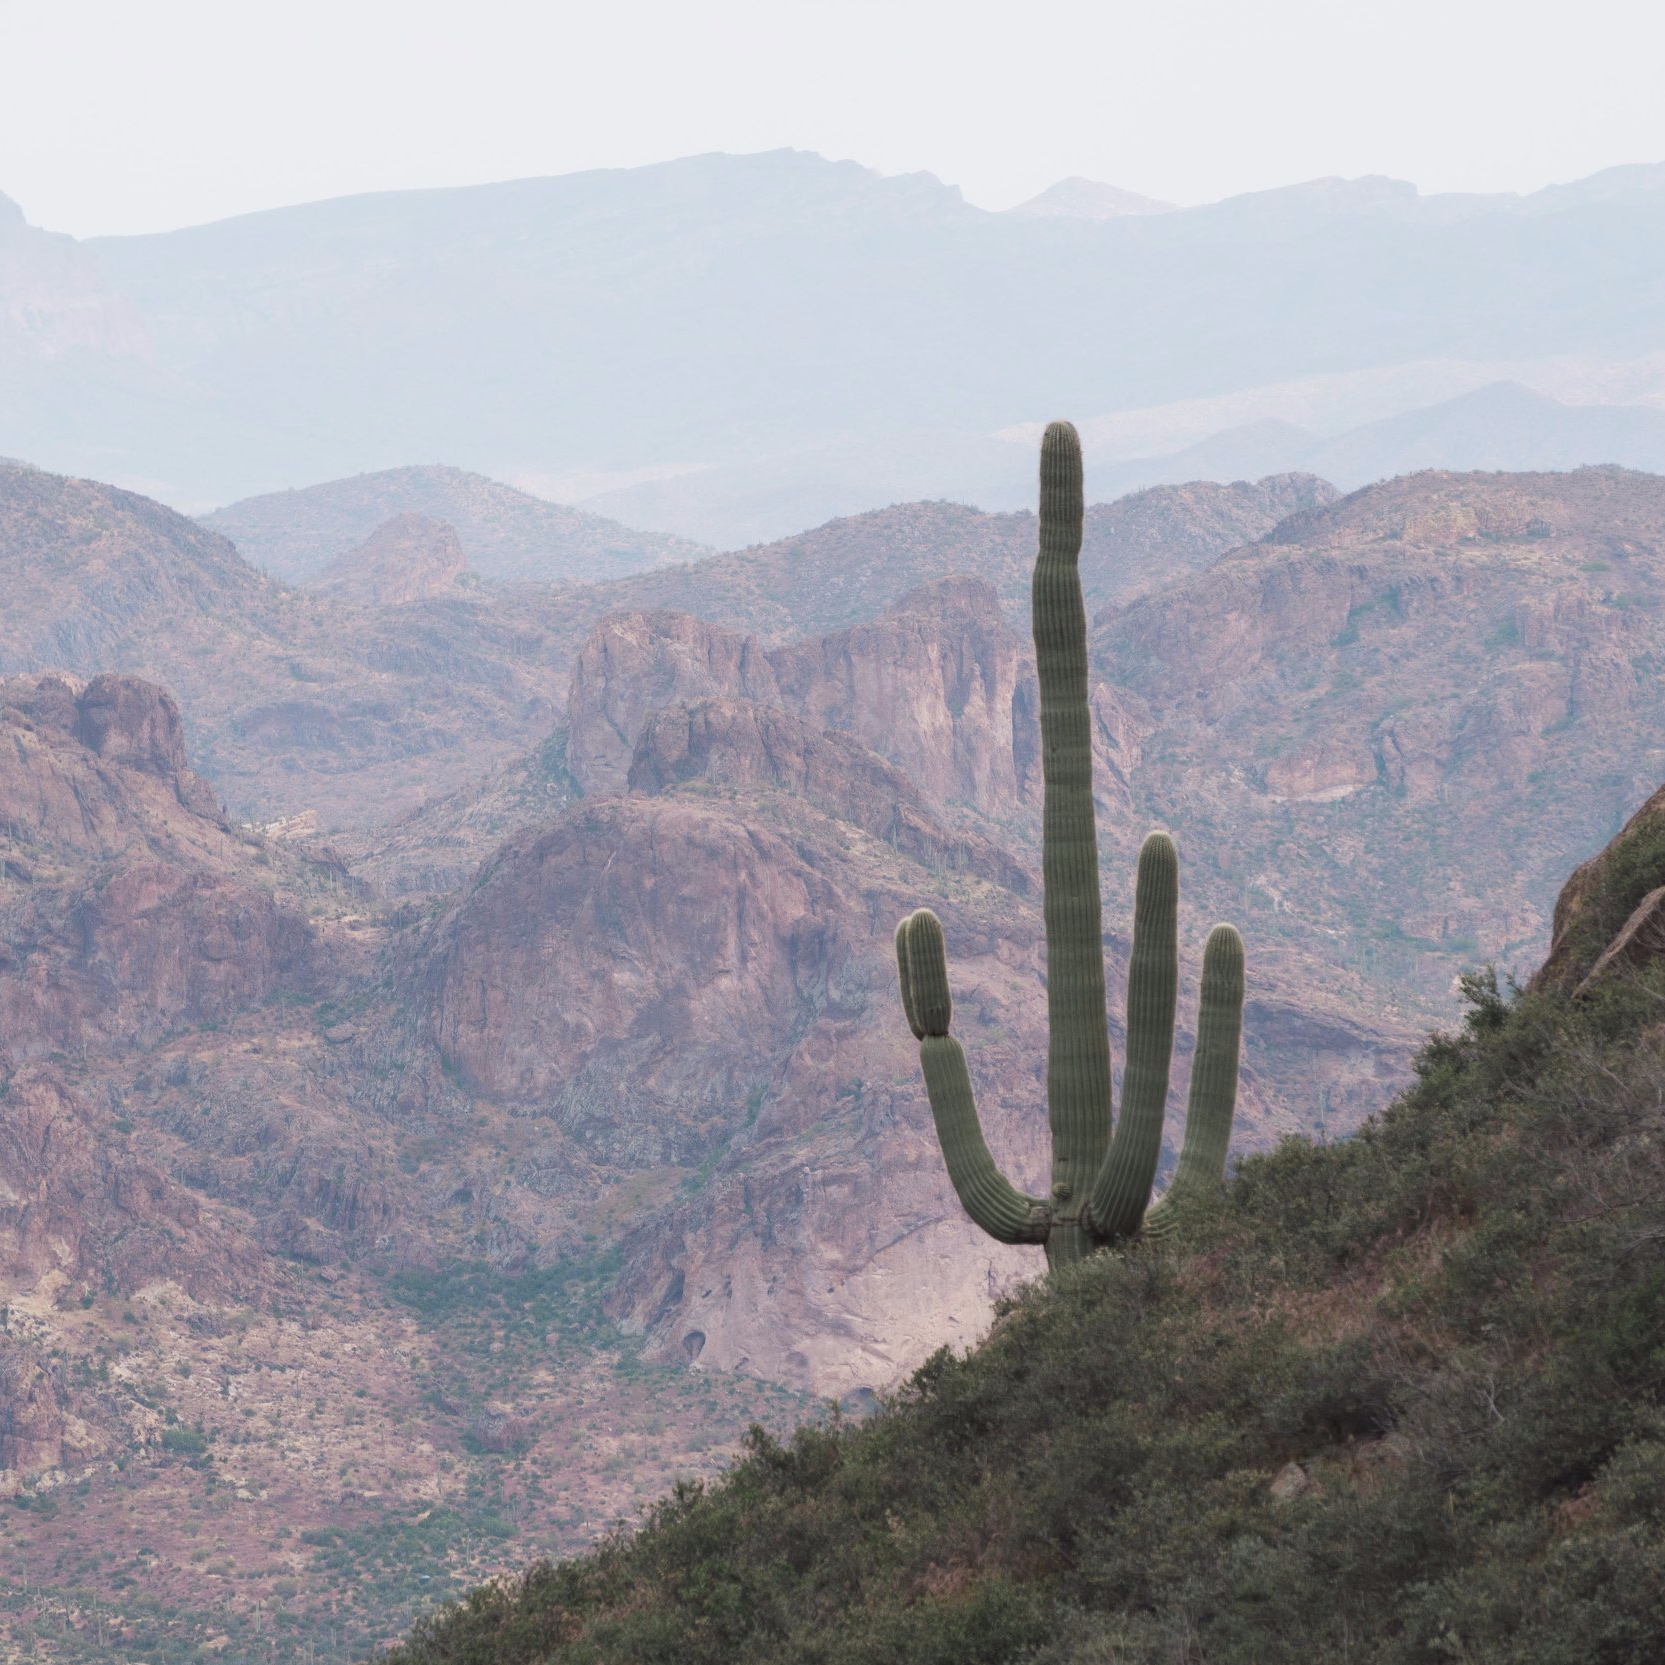 Saguaro in the Superstition Mountains Wilderness